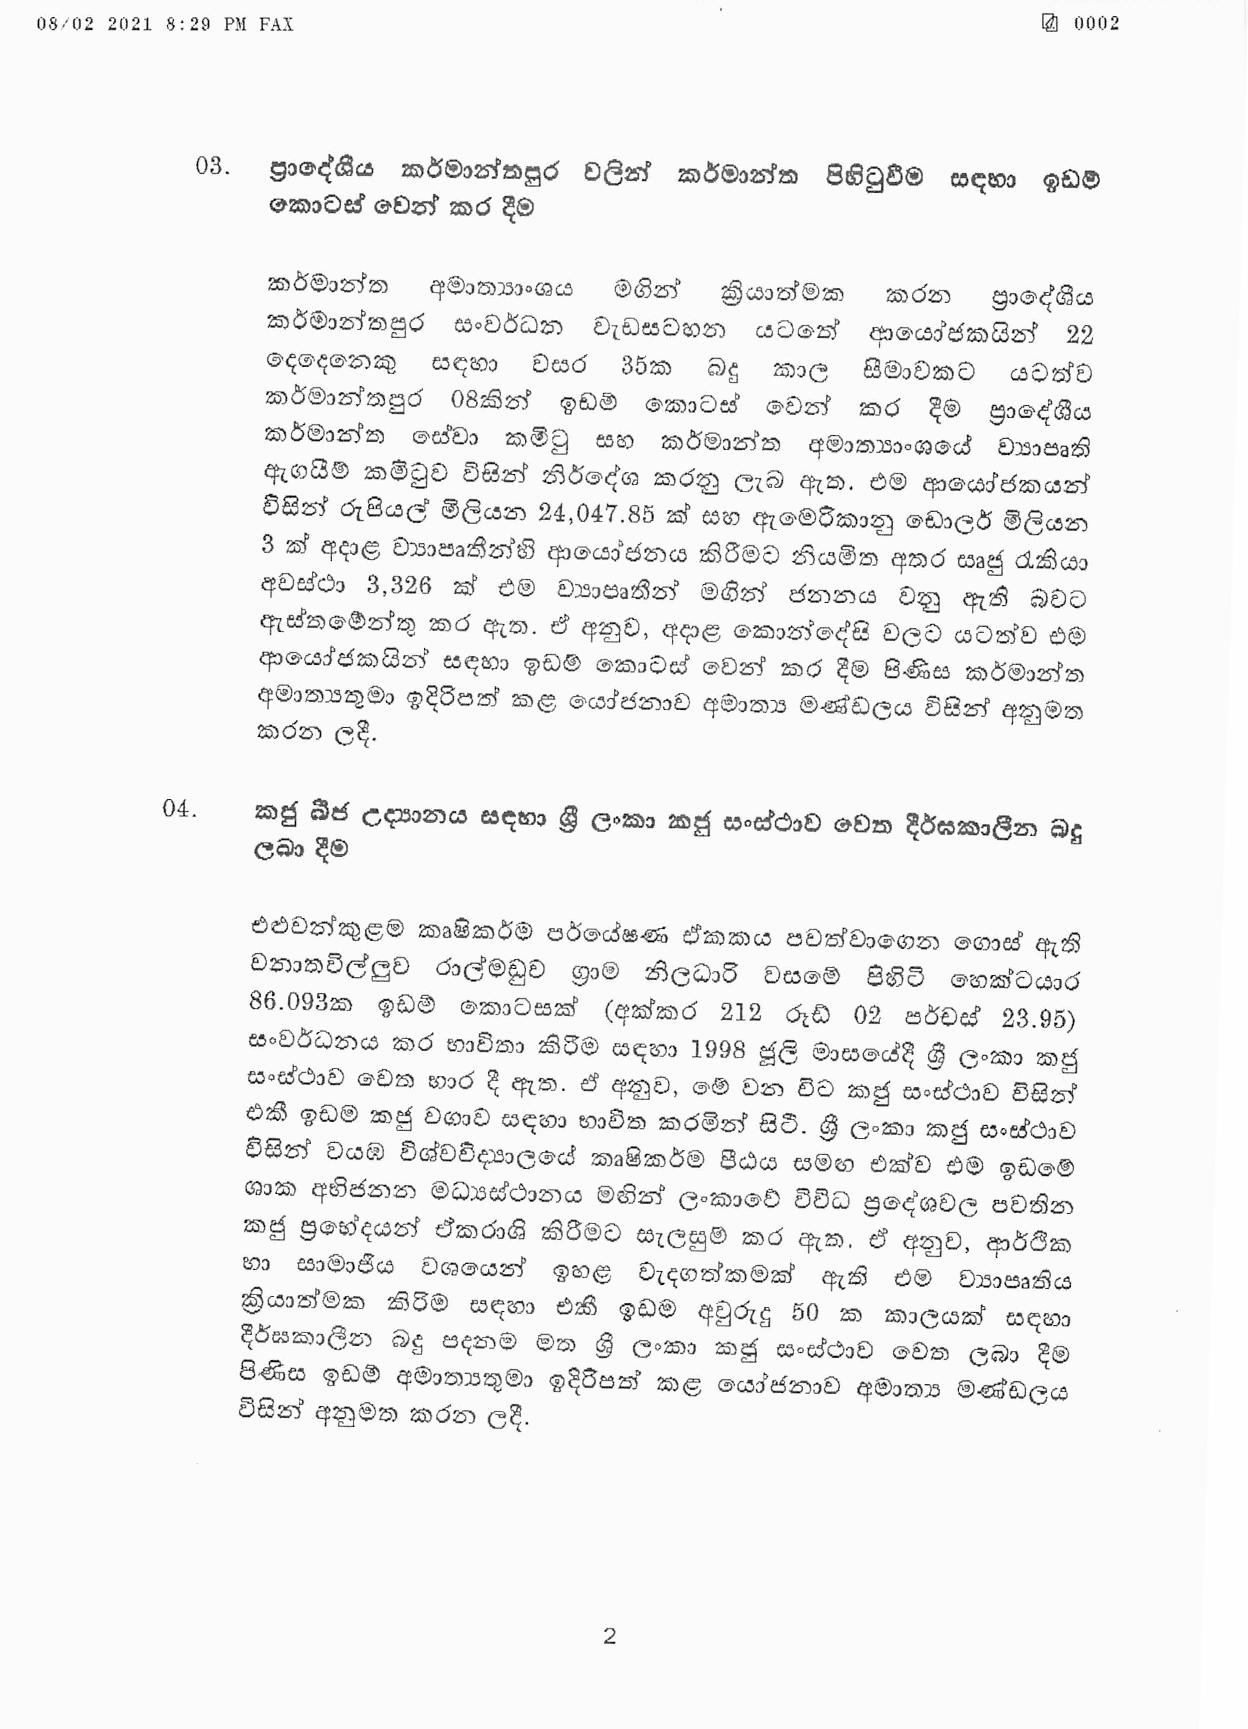 Cabinet Decision on 08.02.2021 page 002